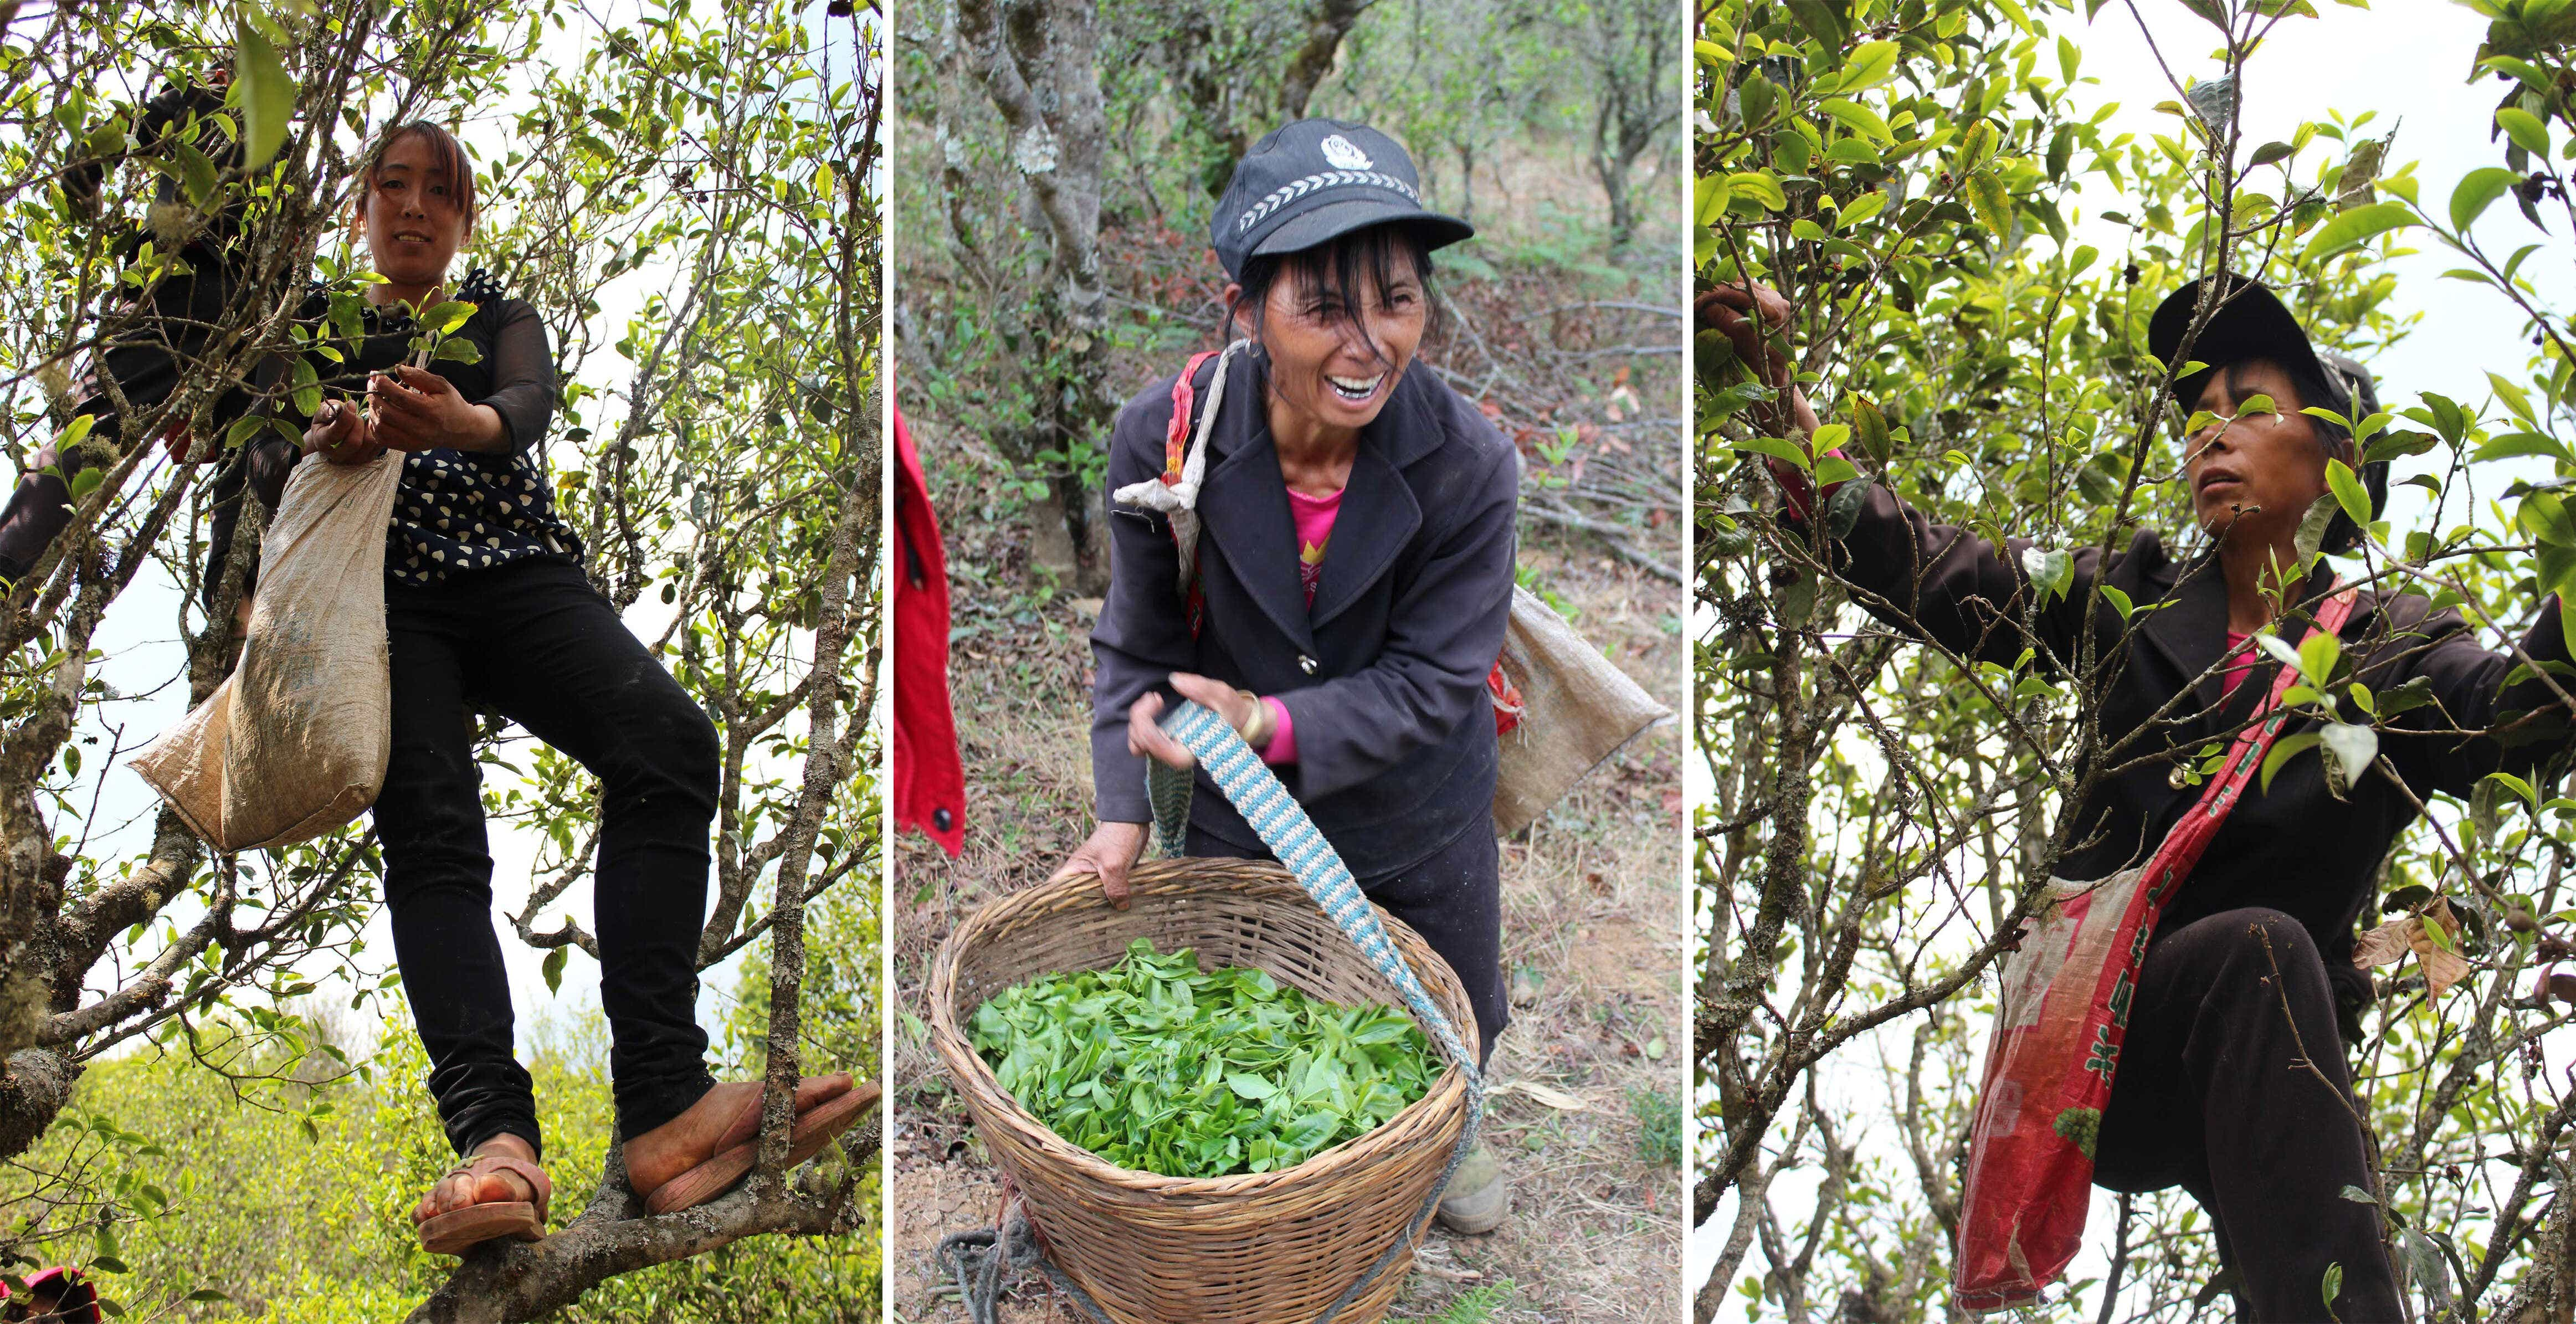 in Qianjiazhai, Ms. Li and her mother pick tea trees behind their family home